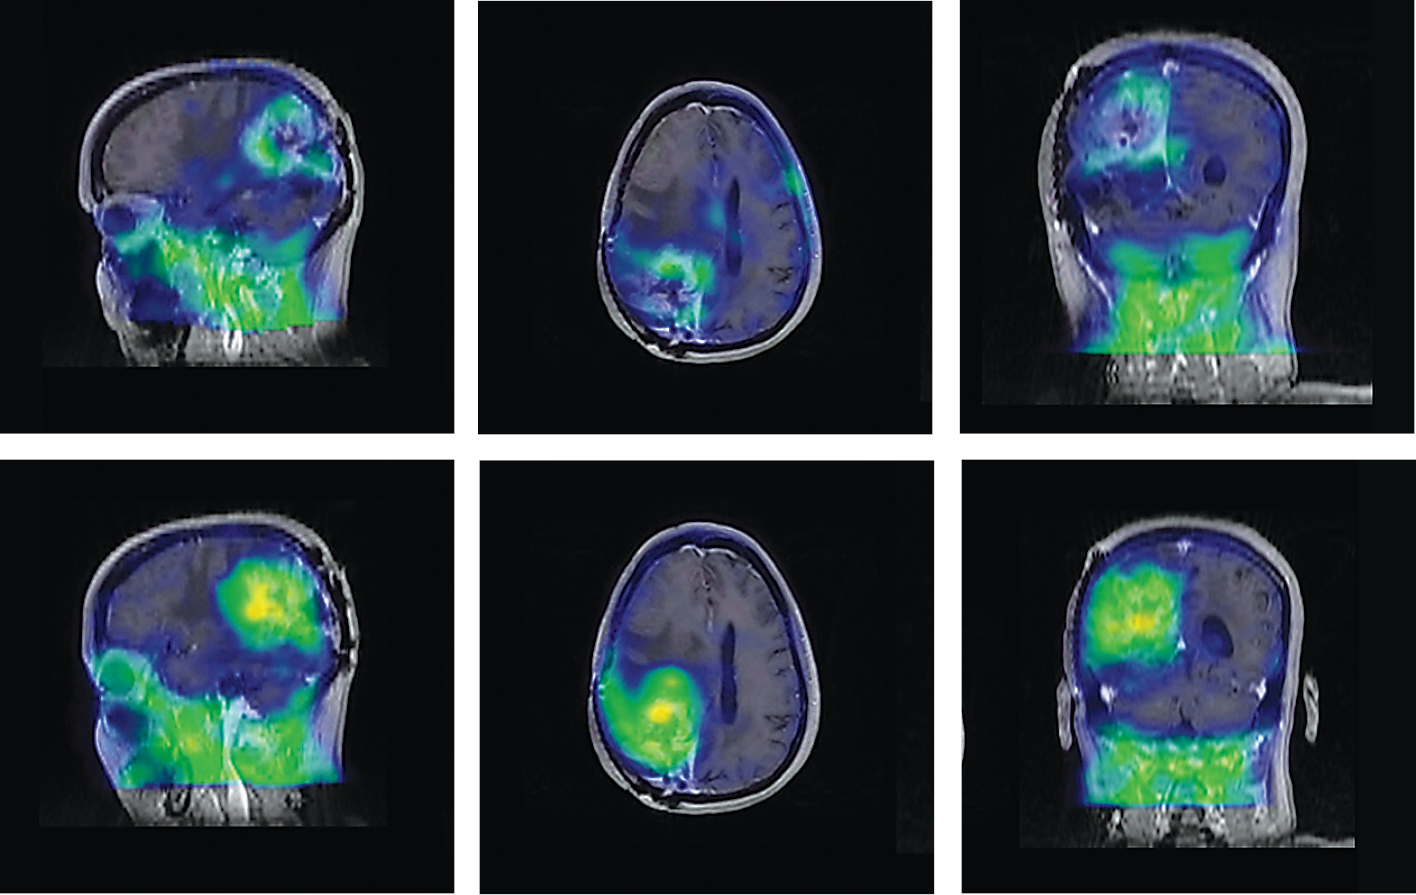 18F-FHBG head PET images superimposed over corresponding MRI images